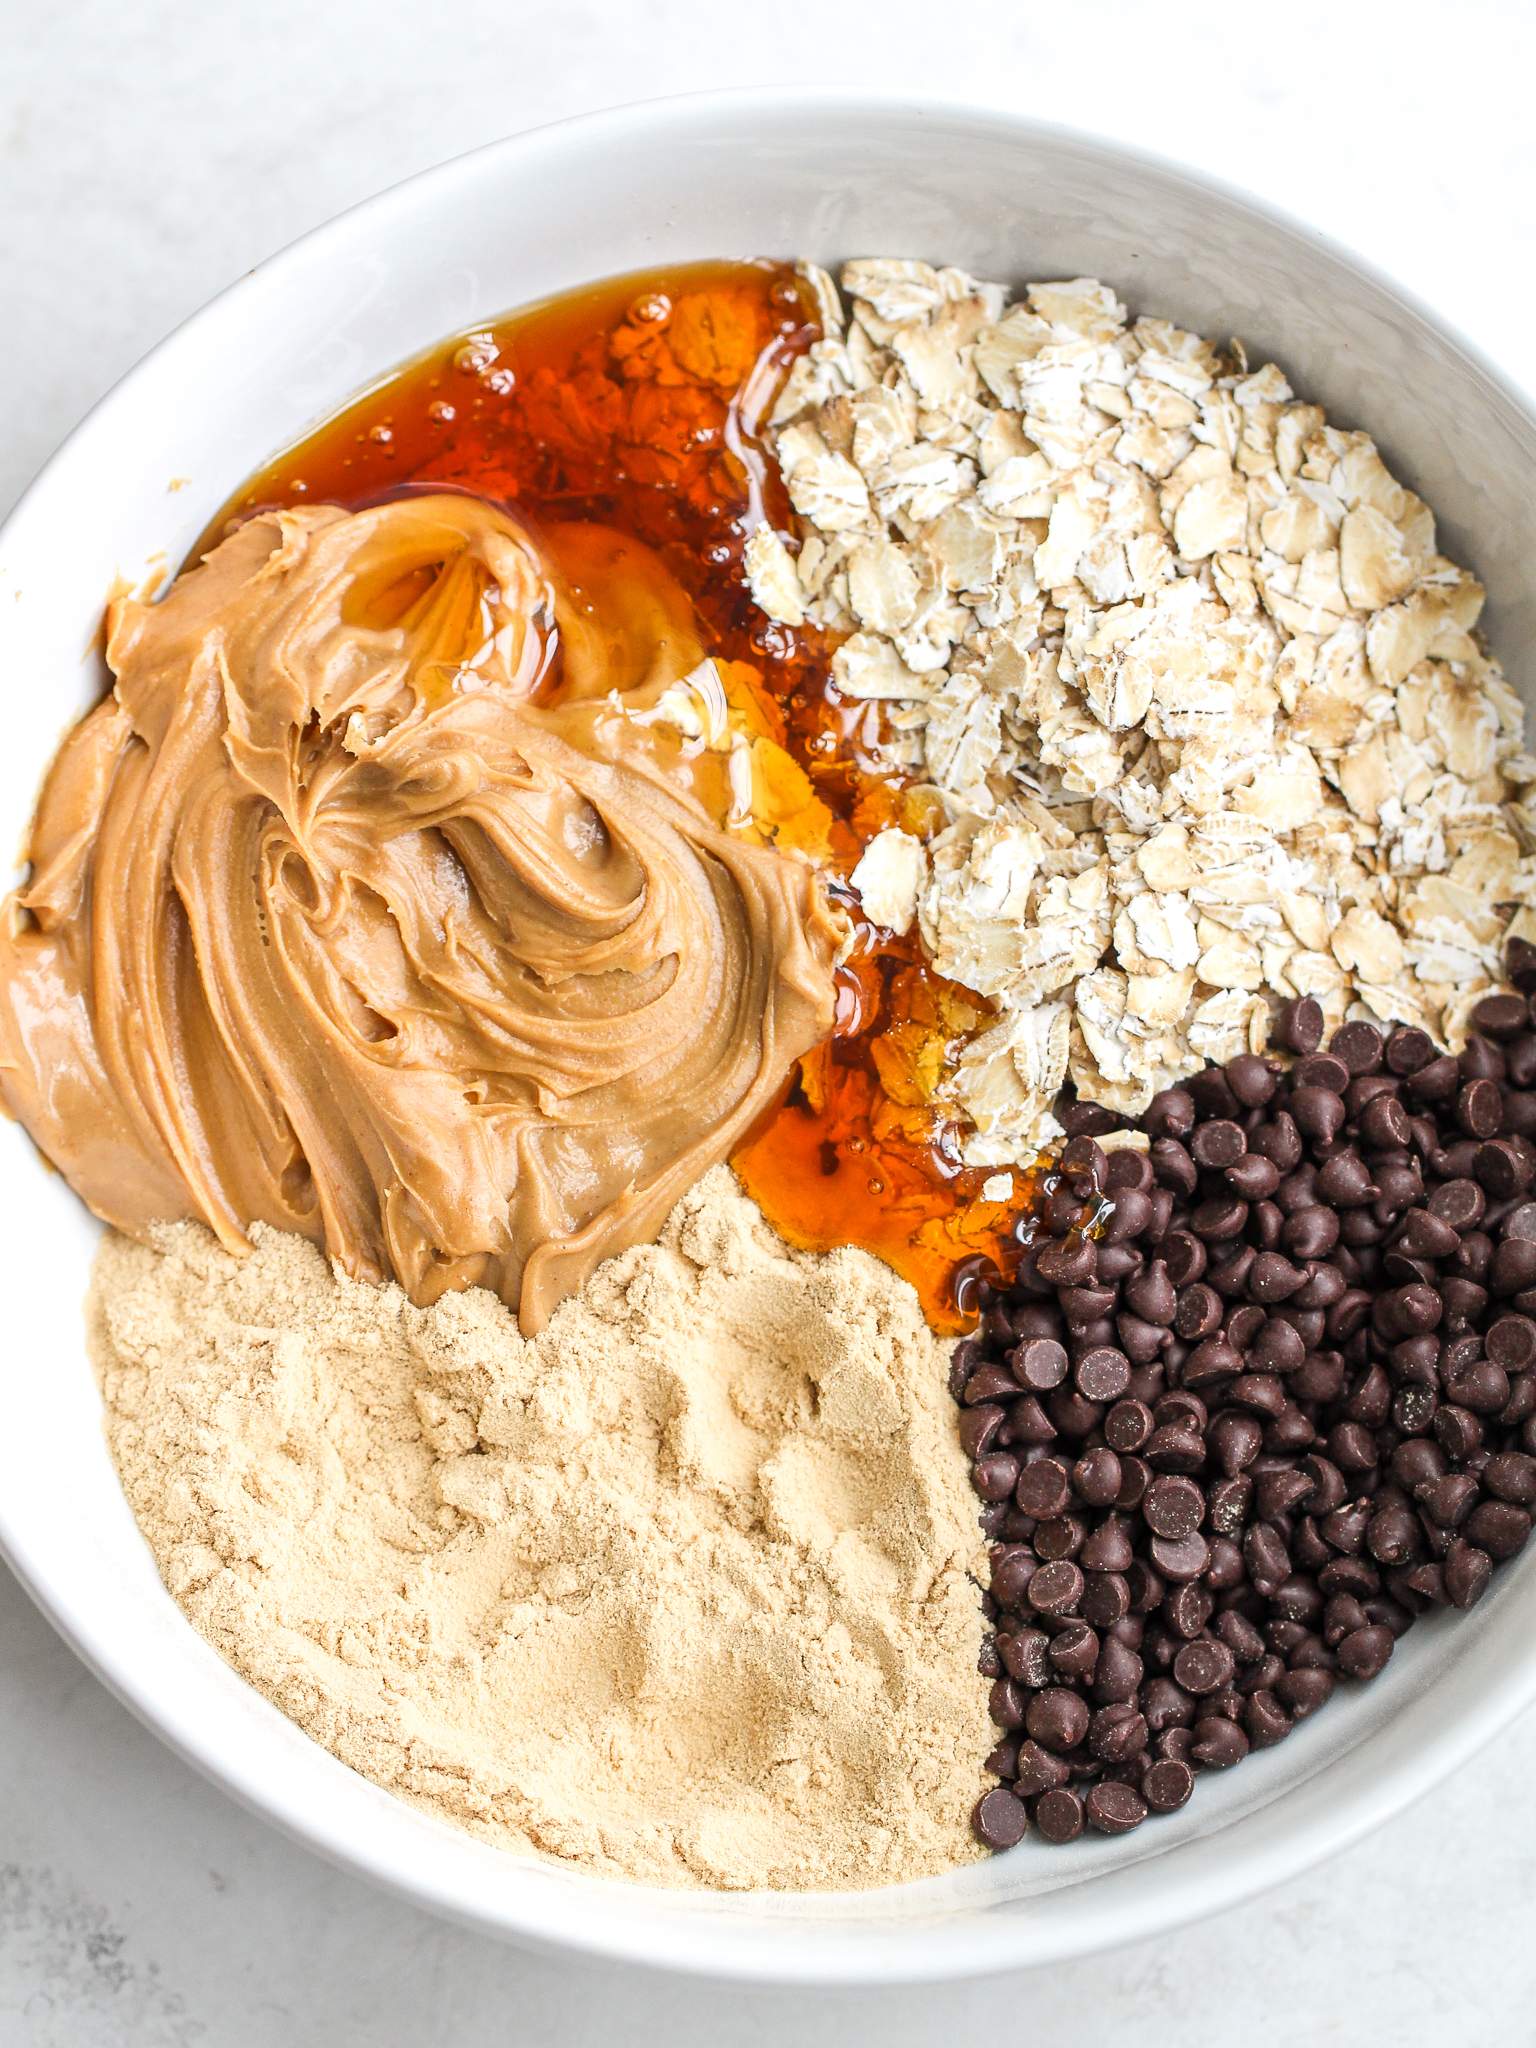 ingredients for peanut butter protein bites in a white bowl  oats, vanilla protein powder, creamy peanut butter, chocolate chips and honey